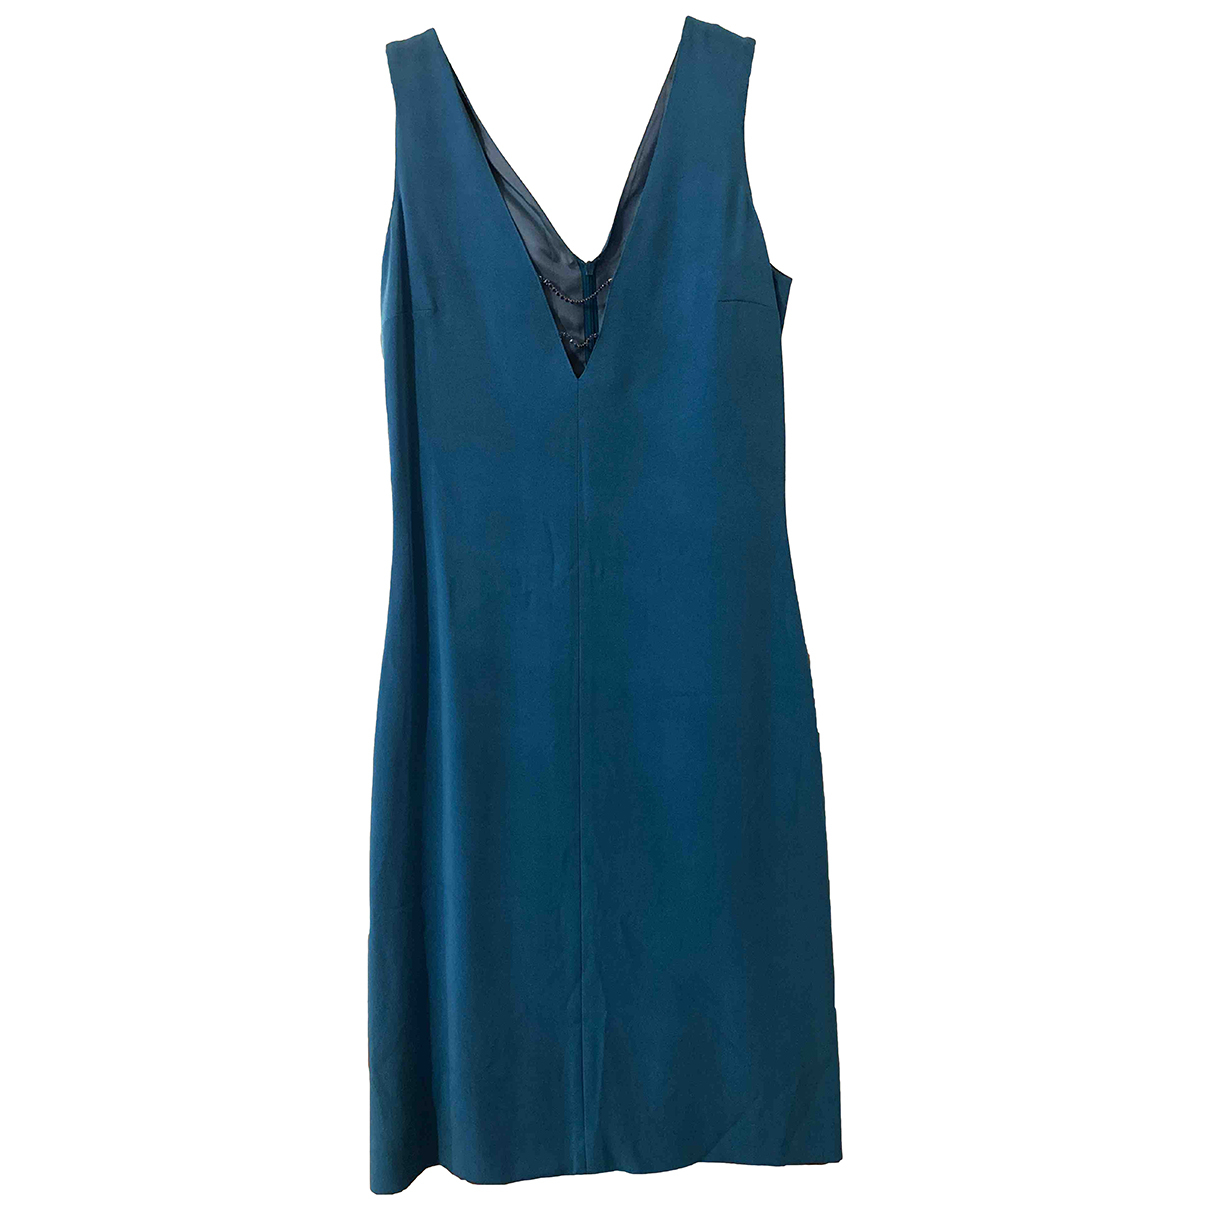 Versus N Blue dress for Women 38 IT